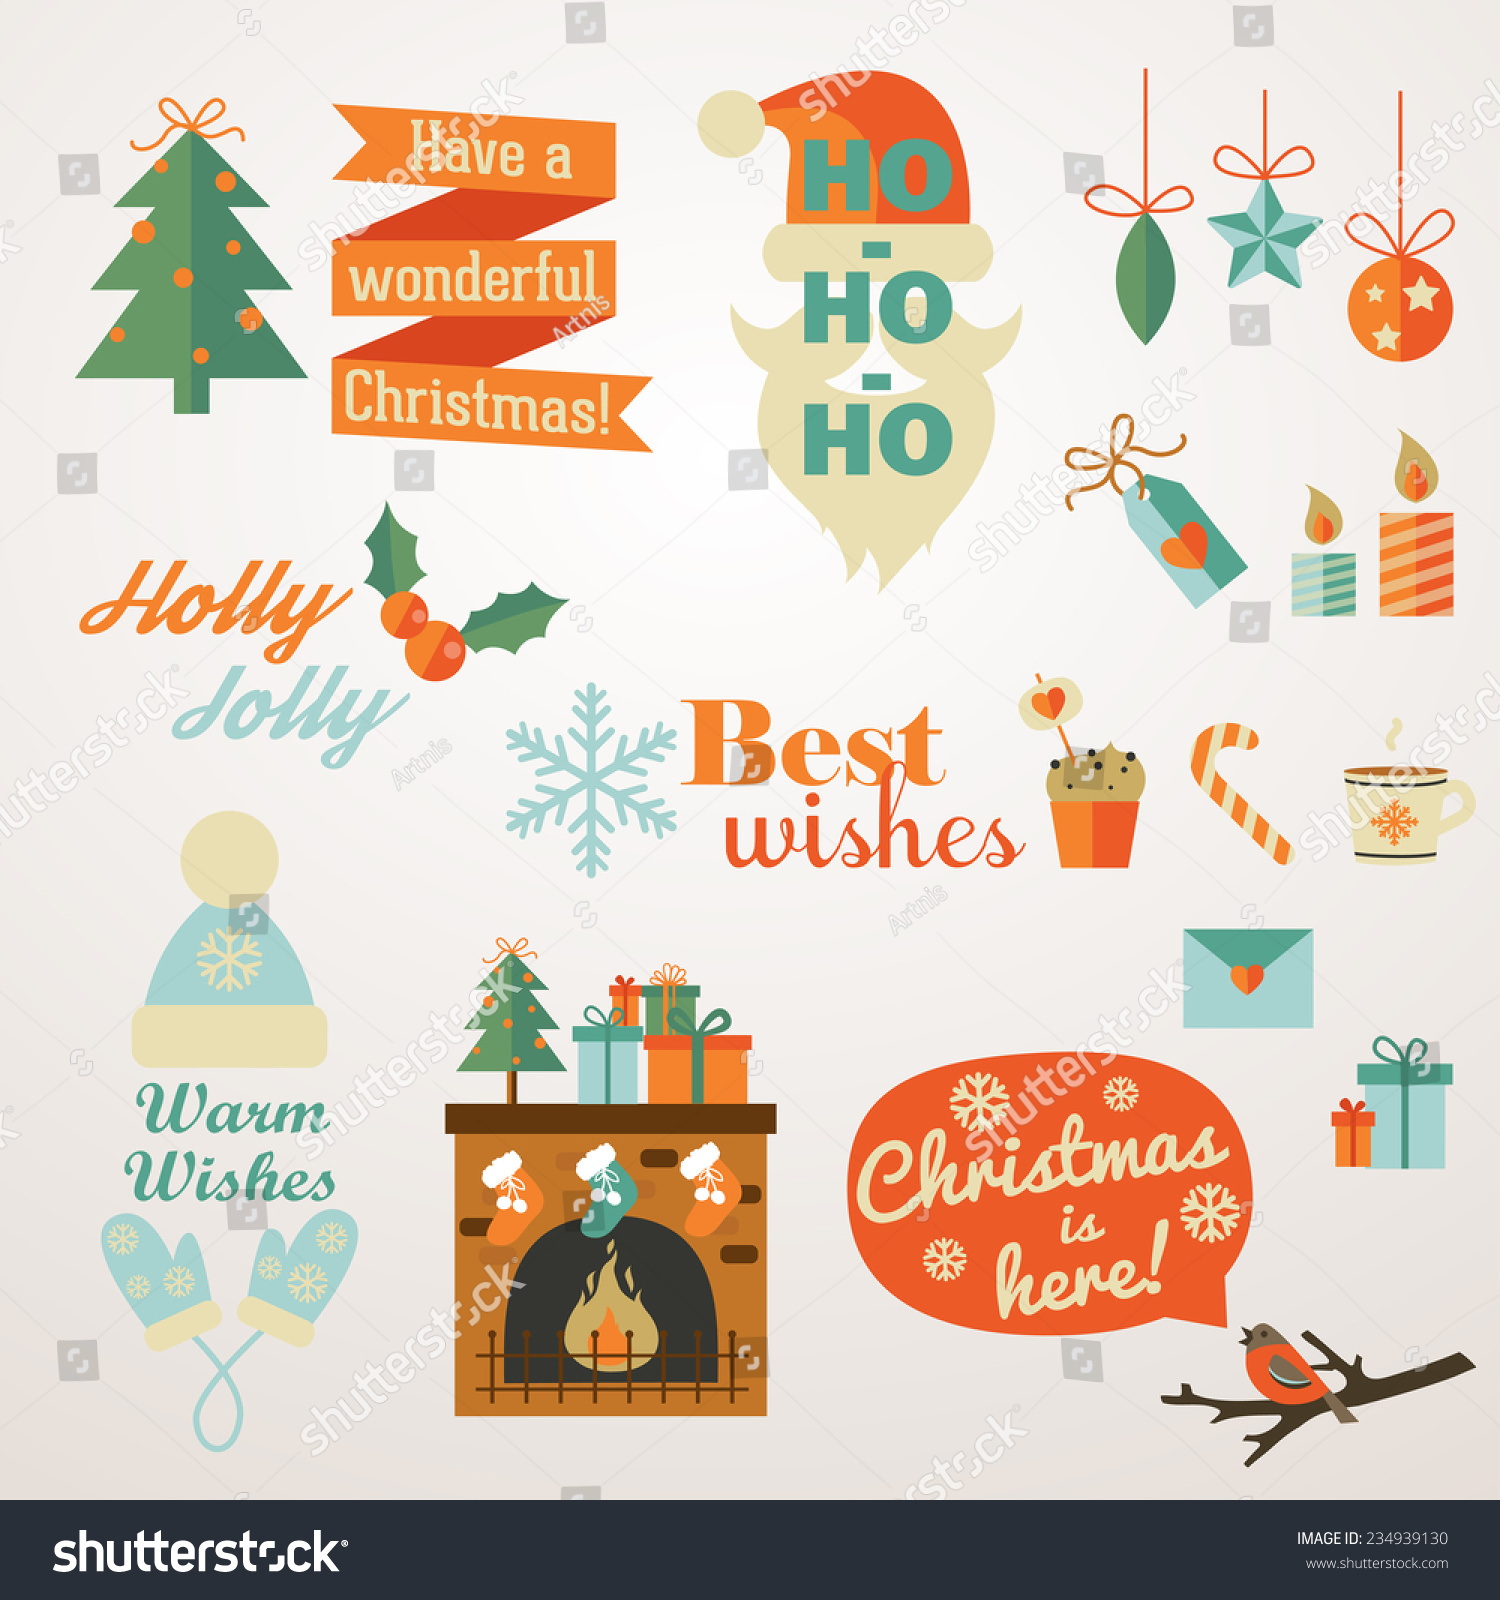 Collection christmas new year greeting phrases stock vector collection of christmas and new year greeting phrases and elements perfect for badge labels m4hsunfo